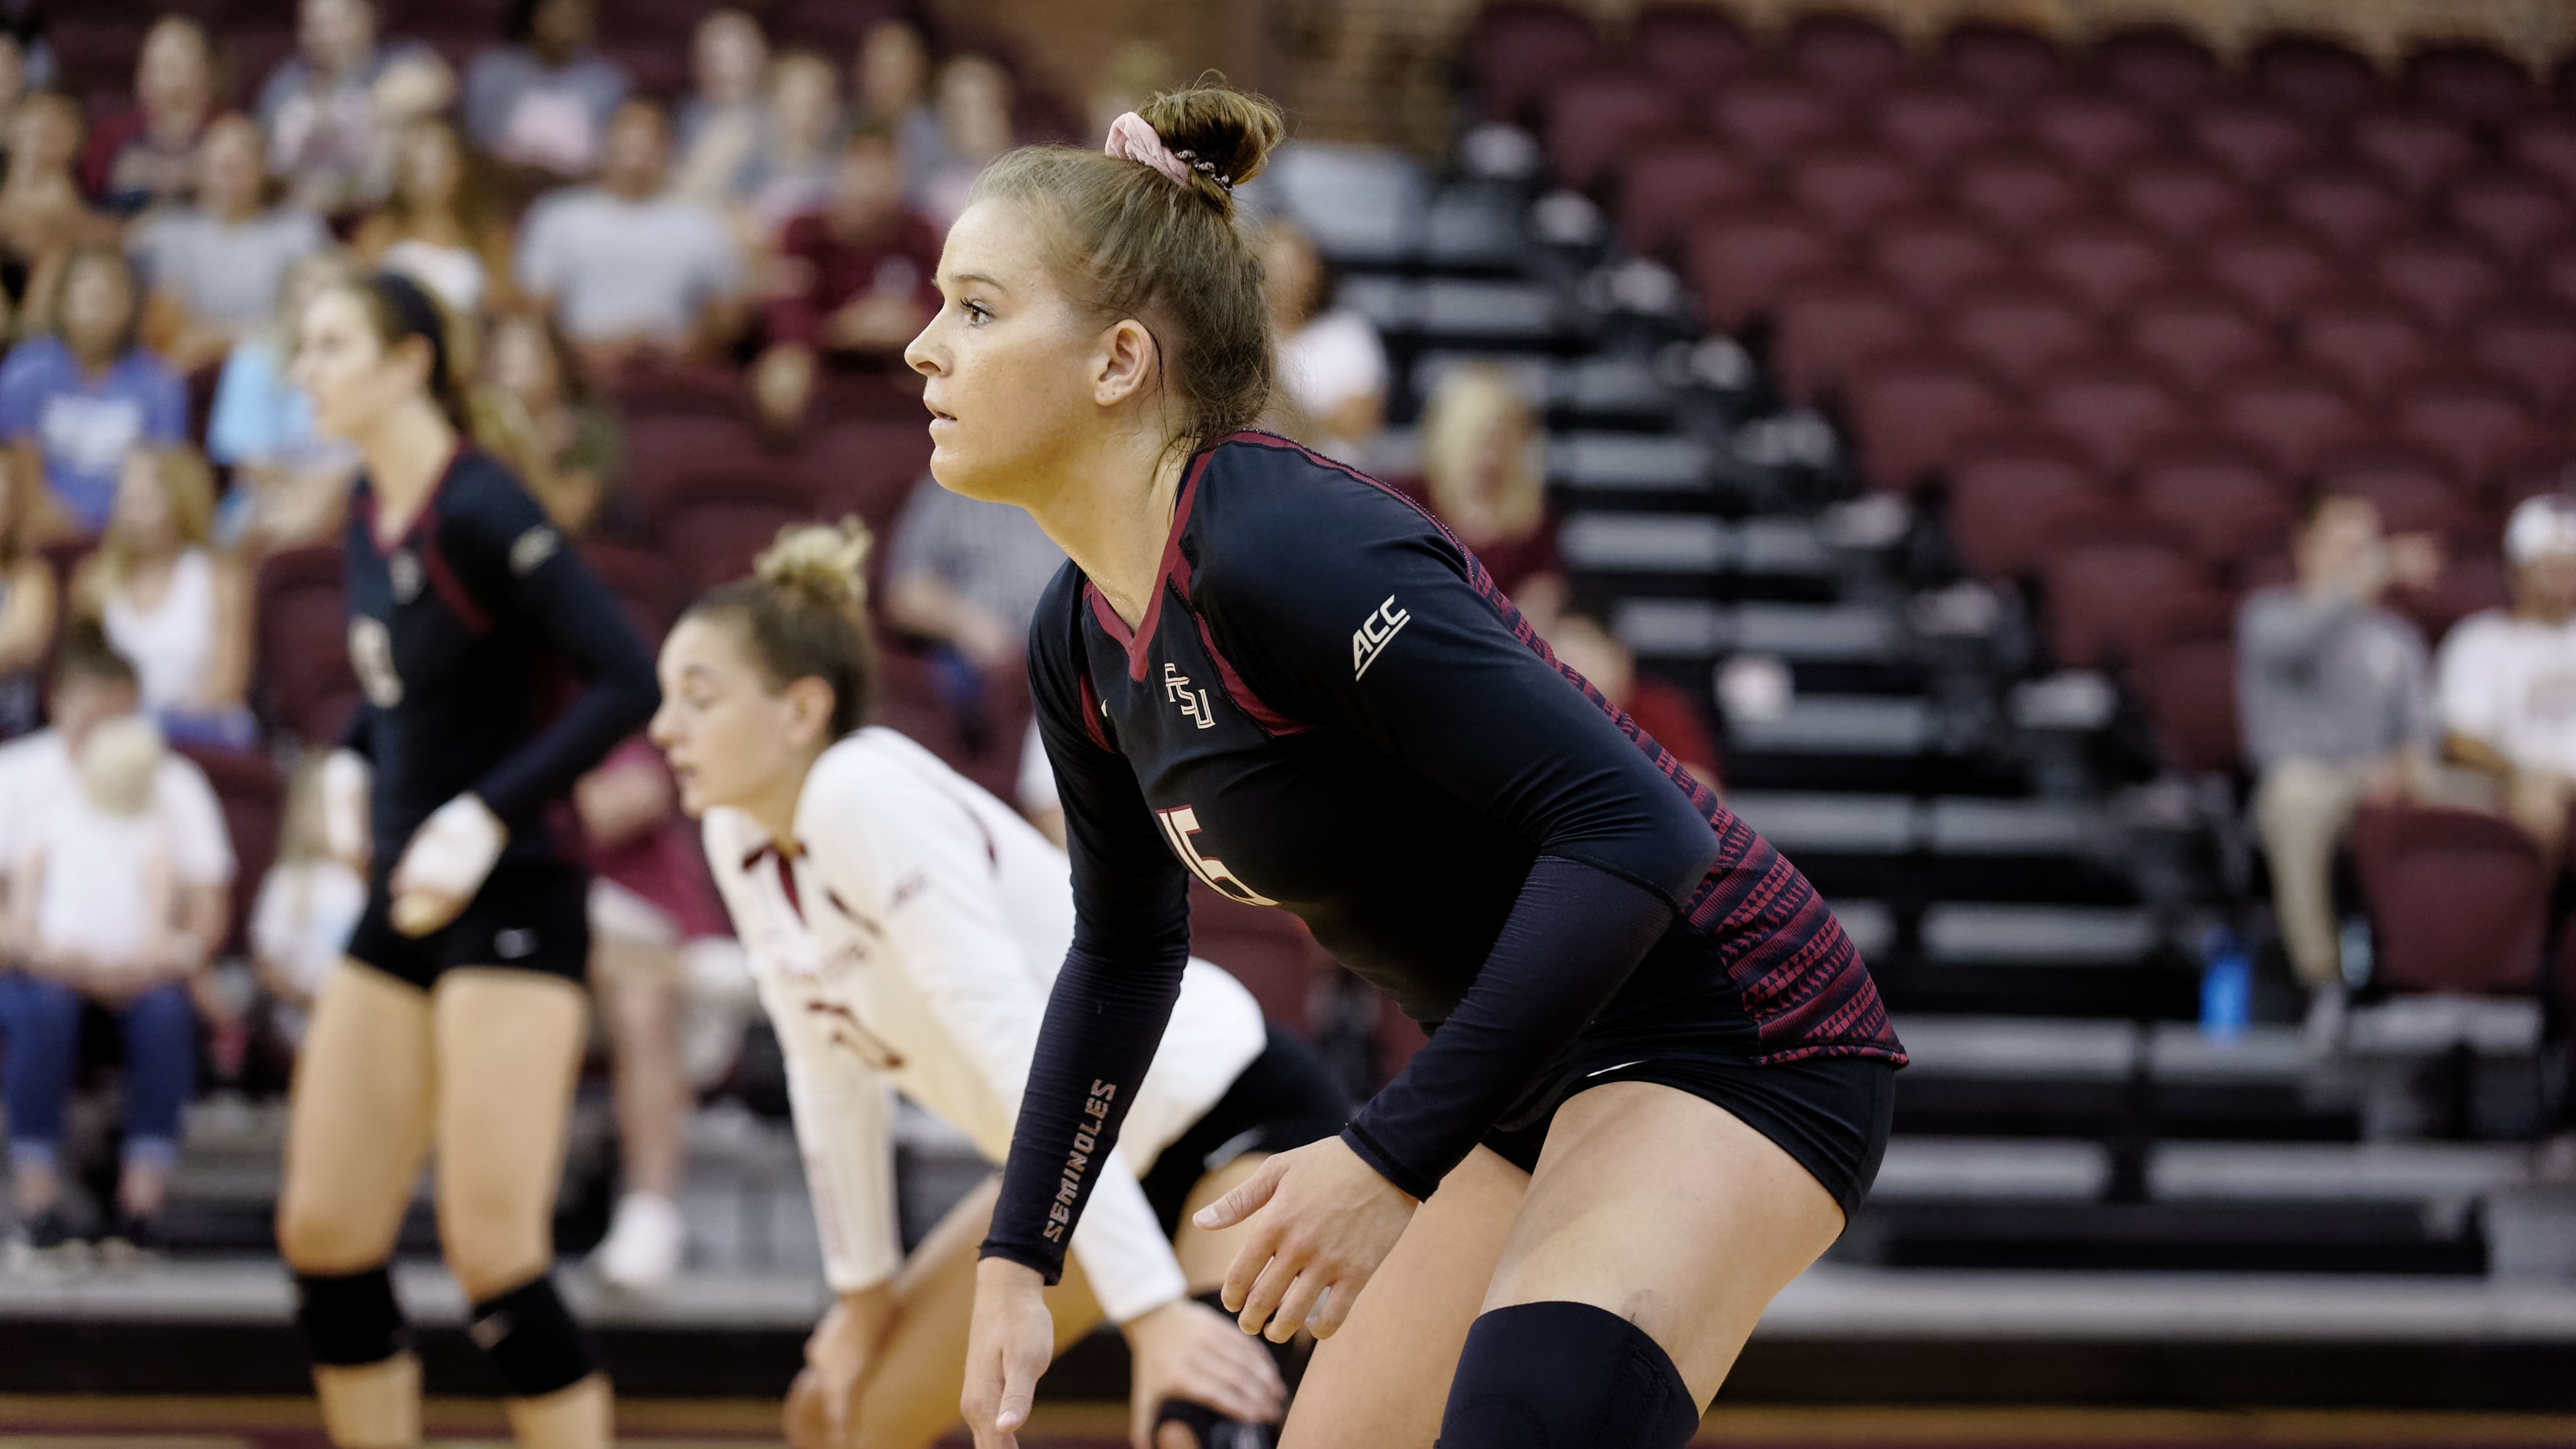 Florida State women's volleyball junior outside hitter Payton Caffrey sizes up the competition in a preseason scrimmage the University of South Alabama.